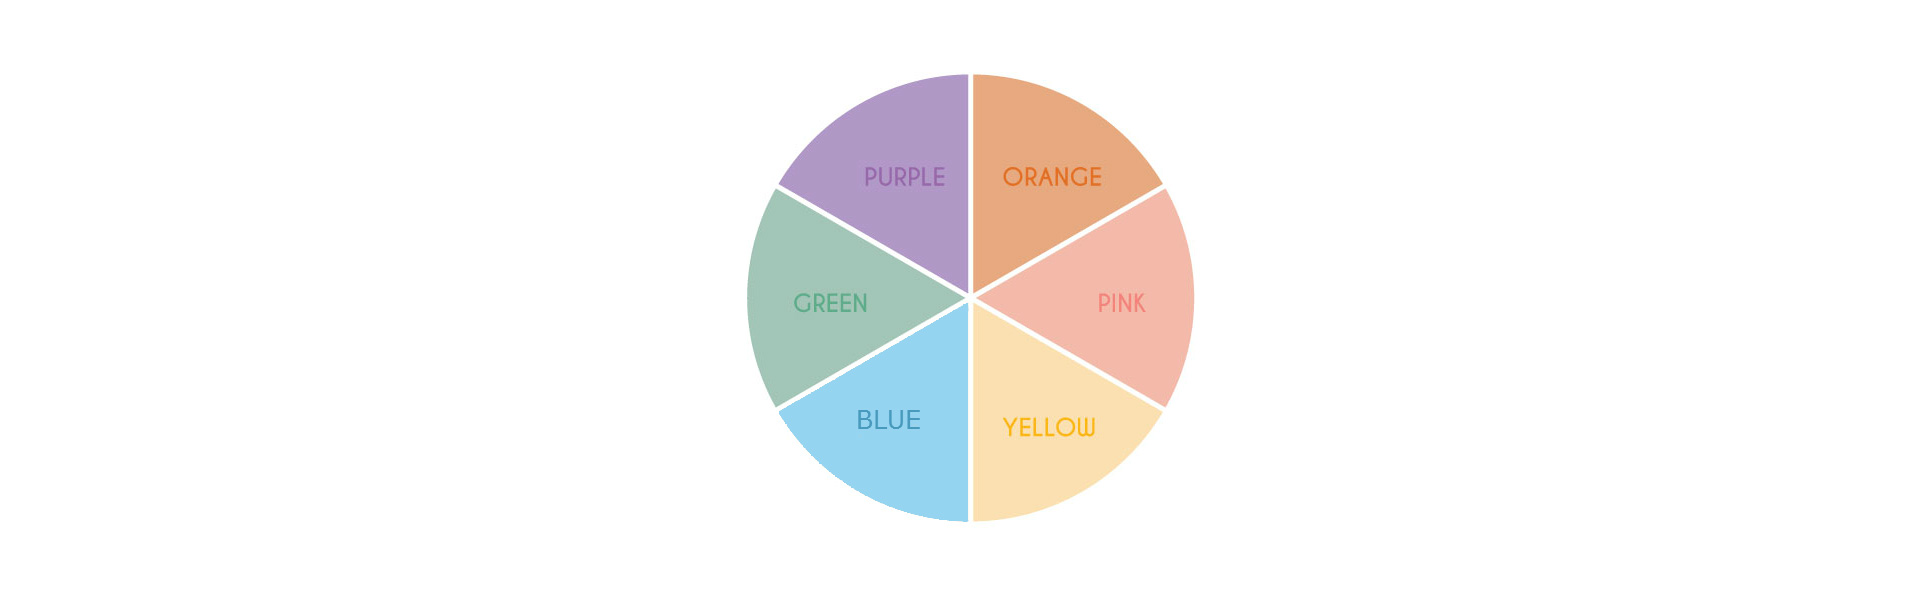 hight resolution of here the color wheel determines which color of concealer will work best on your blemish